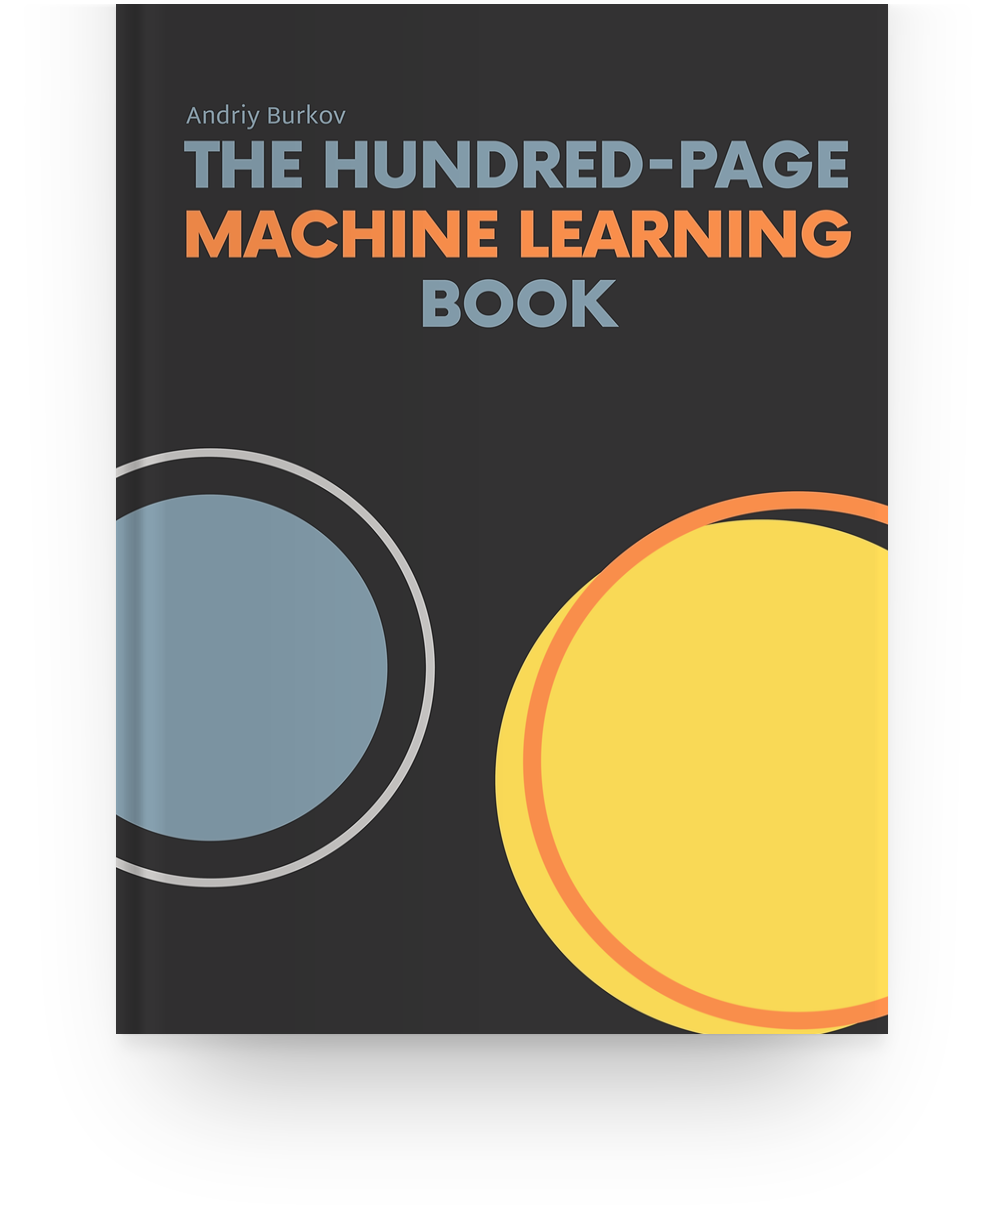 The Hundred-Page Machine Learning Book by Andriy Burkov